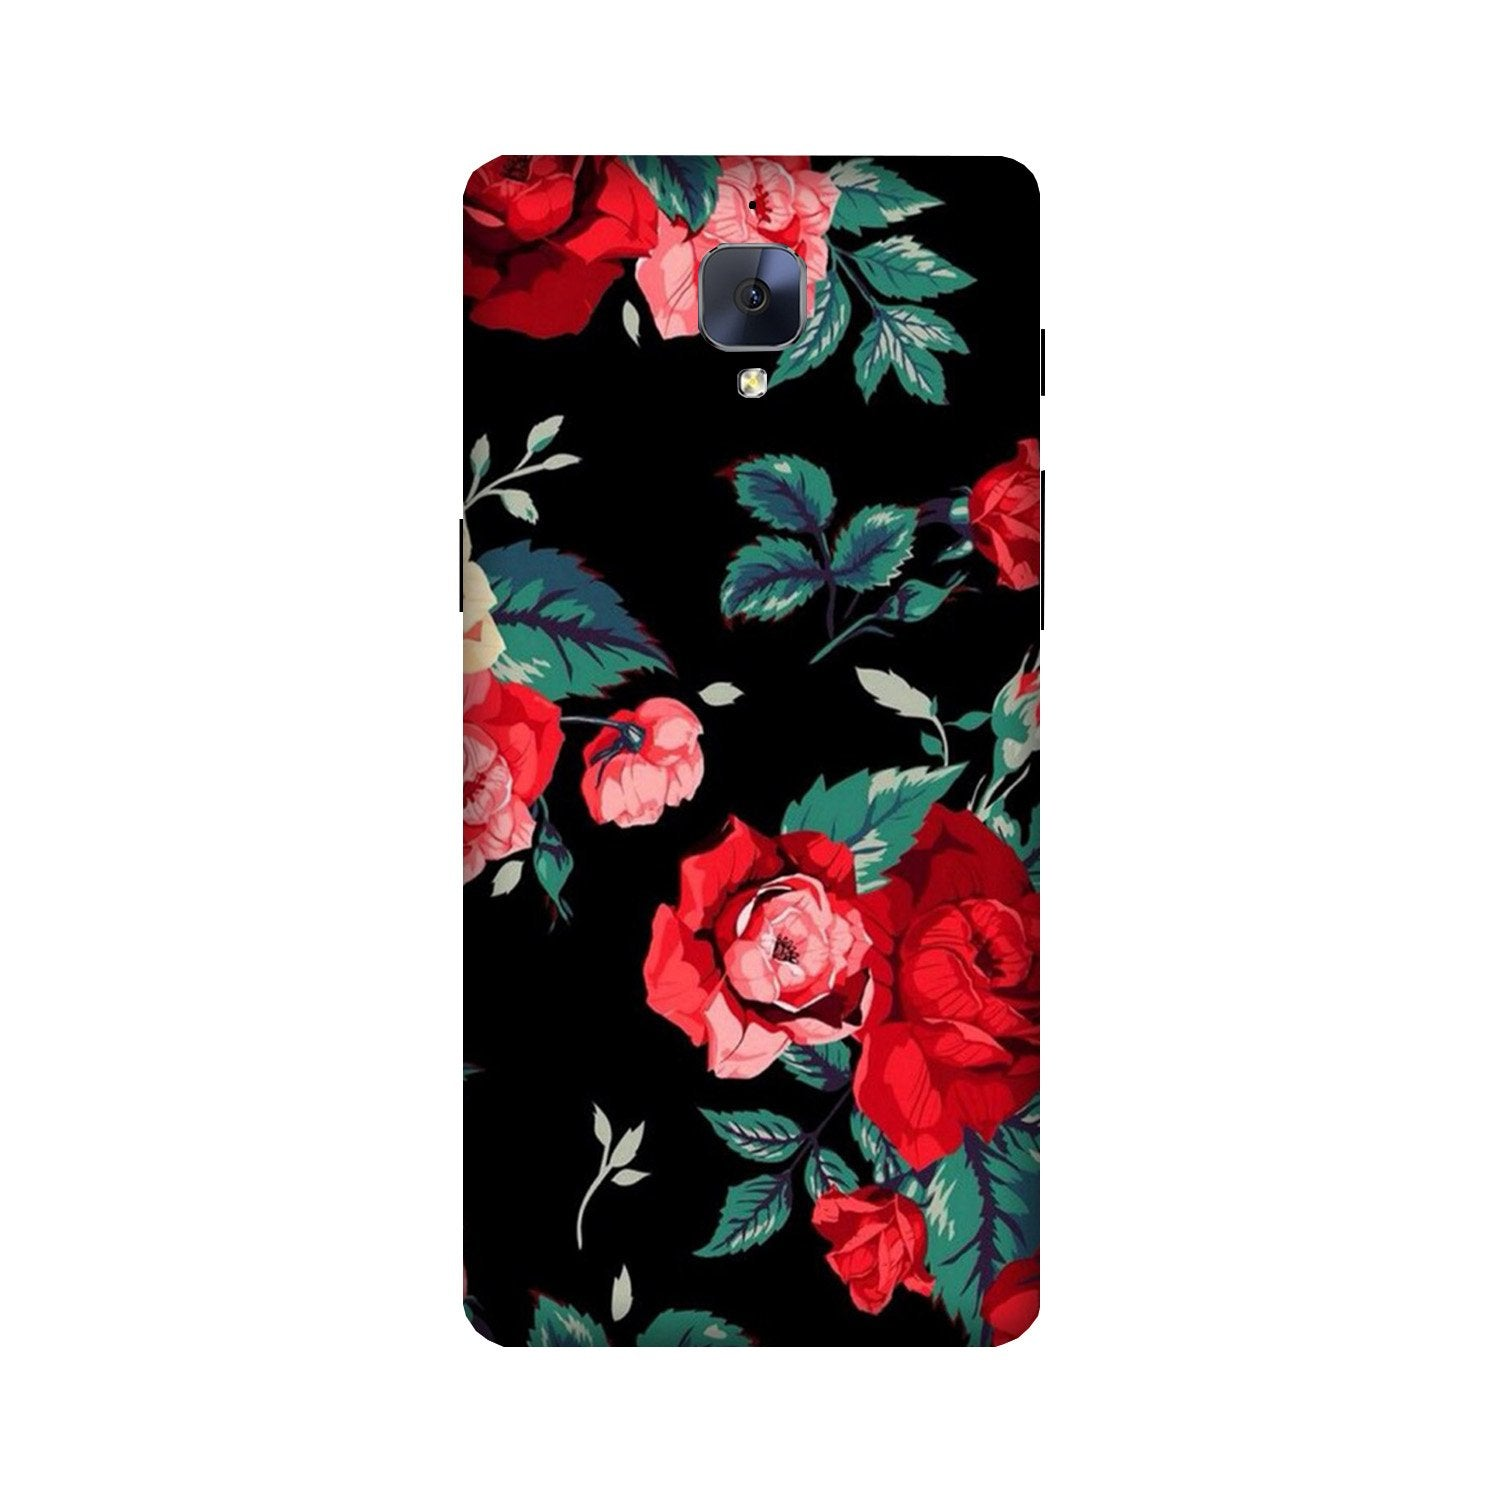 Red Rose2 Case for OnePlus 3/ 3T